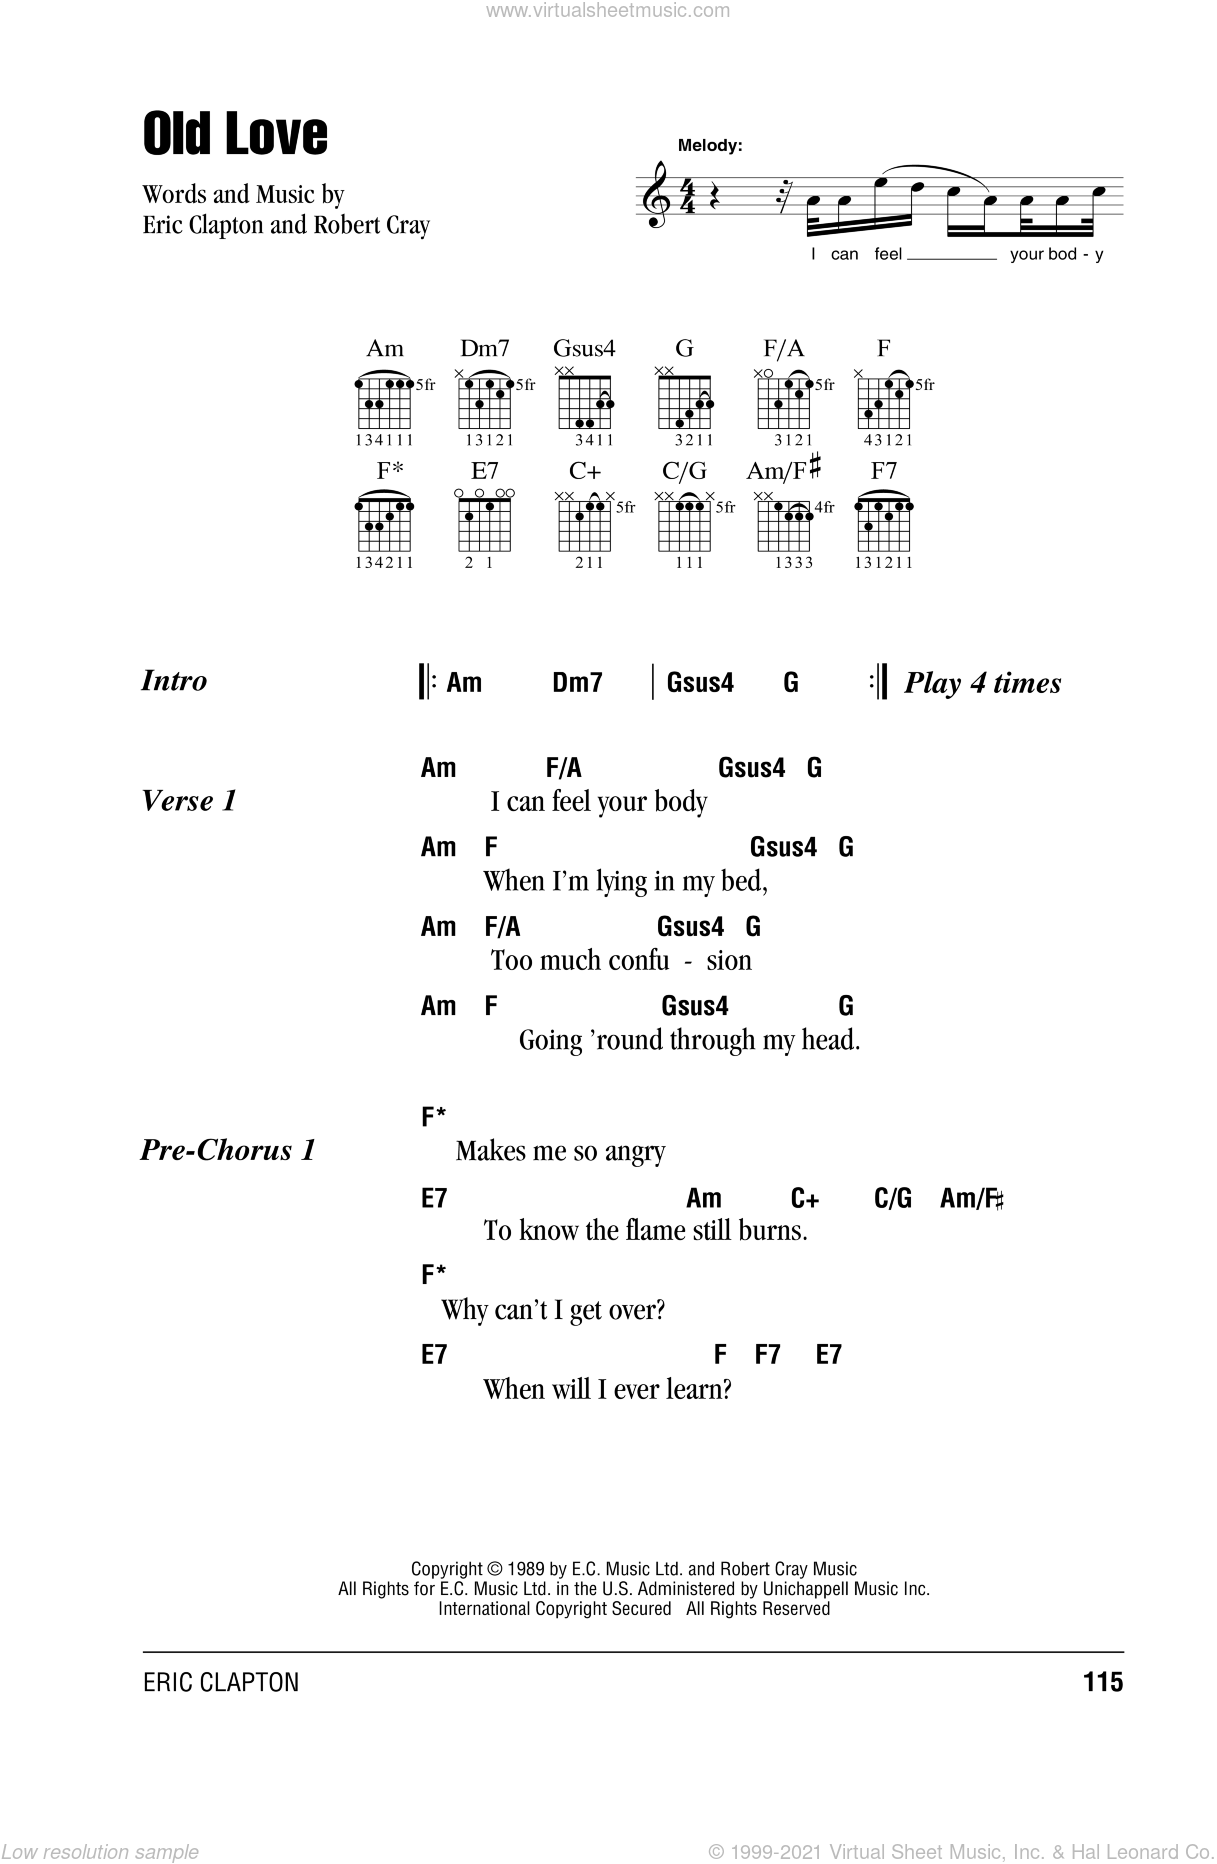 Old Love sheet music for guitar (chords) by Eric Clapton